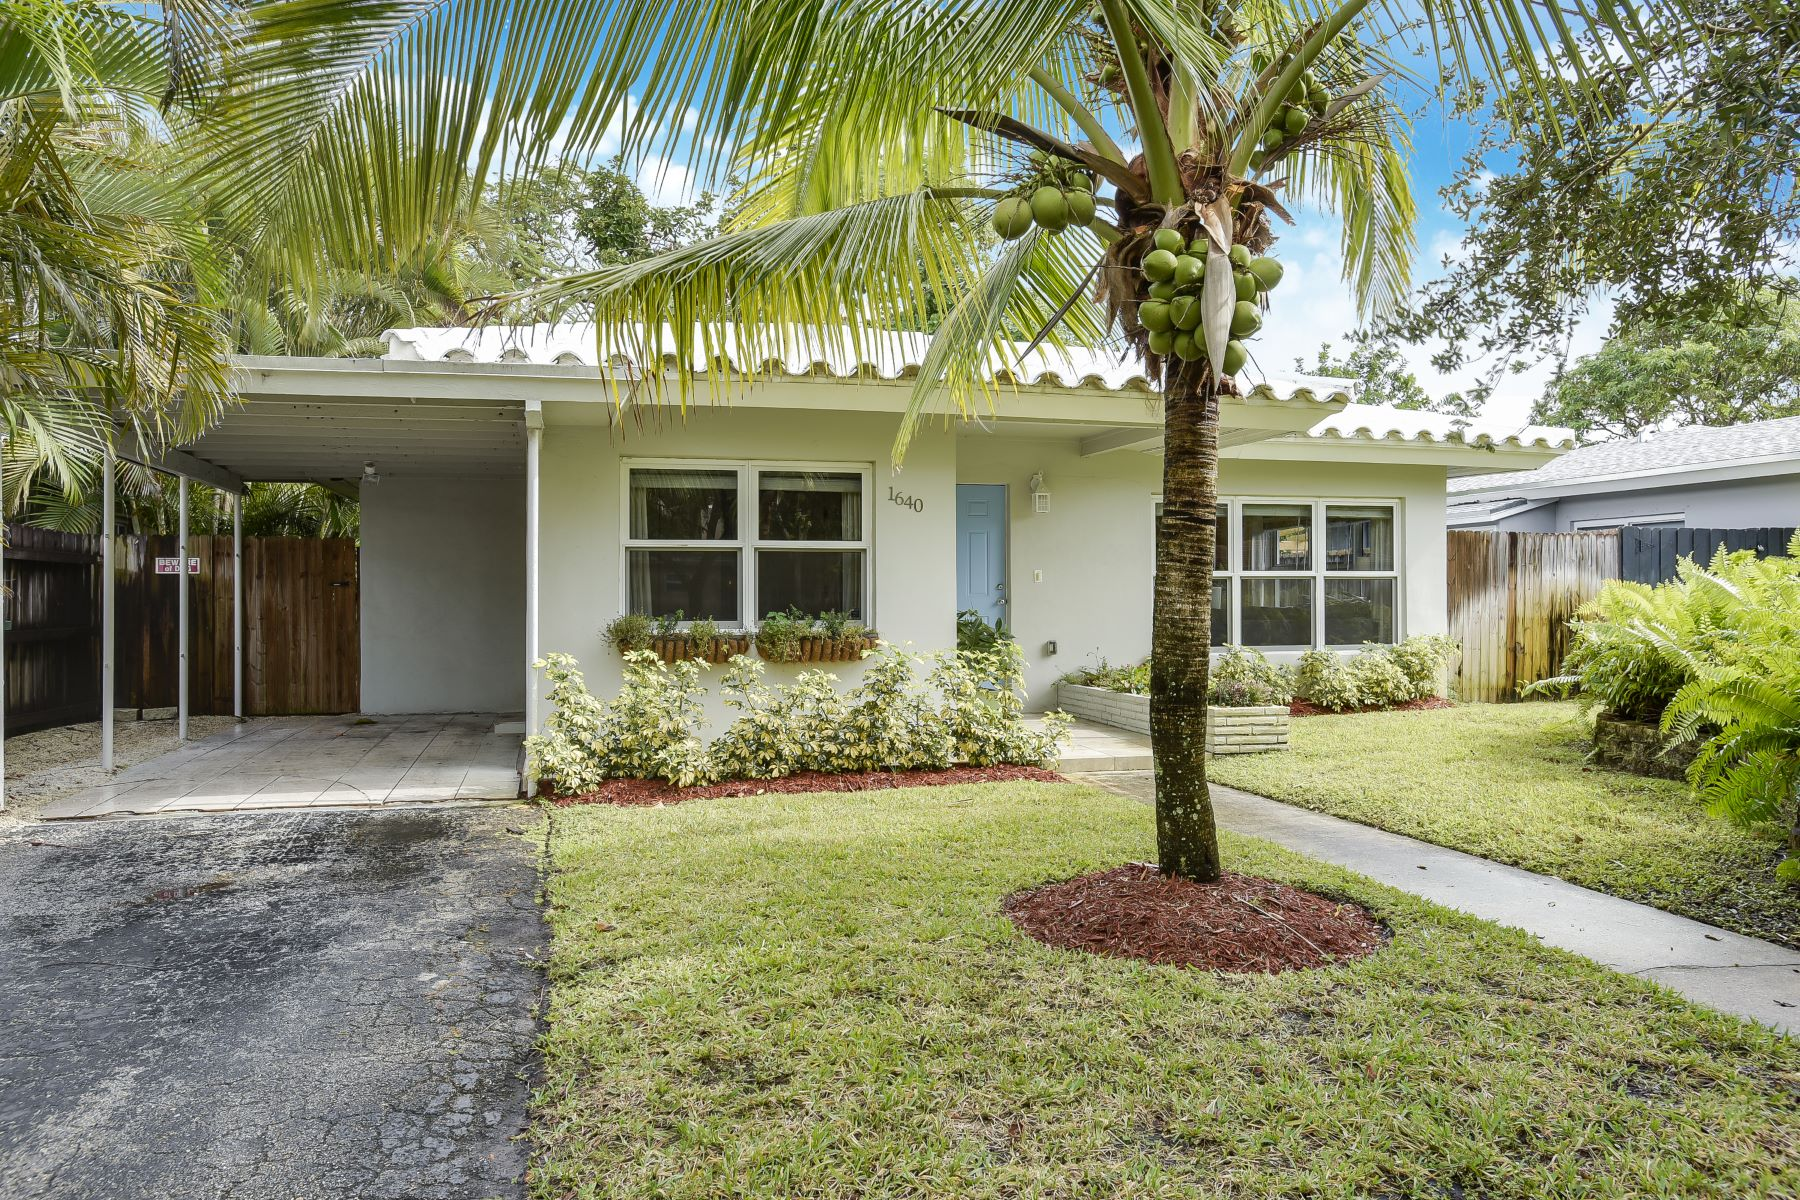 Single Family Home for Rent at 1640 Nw 7th Ave 1640 Nw 7th Ave Fort Lauderdale, Florida 33311 United States